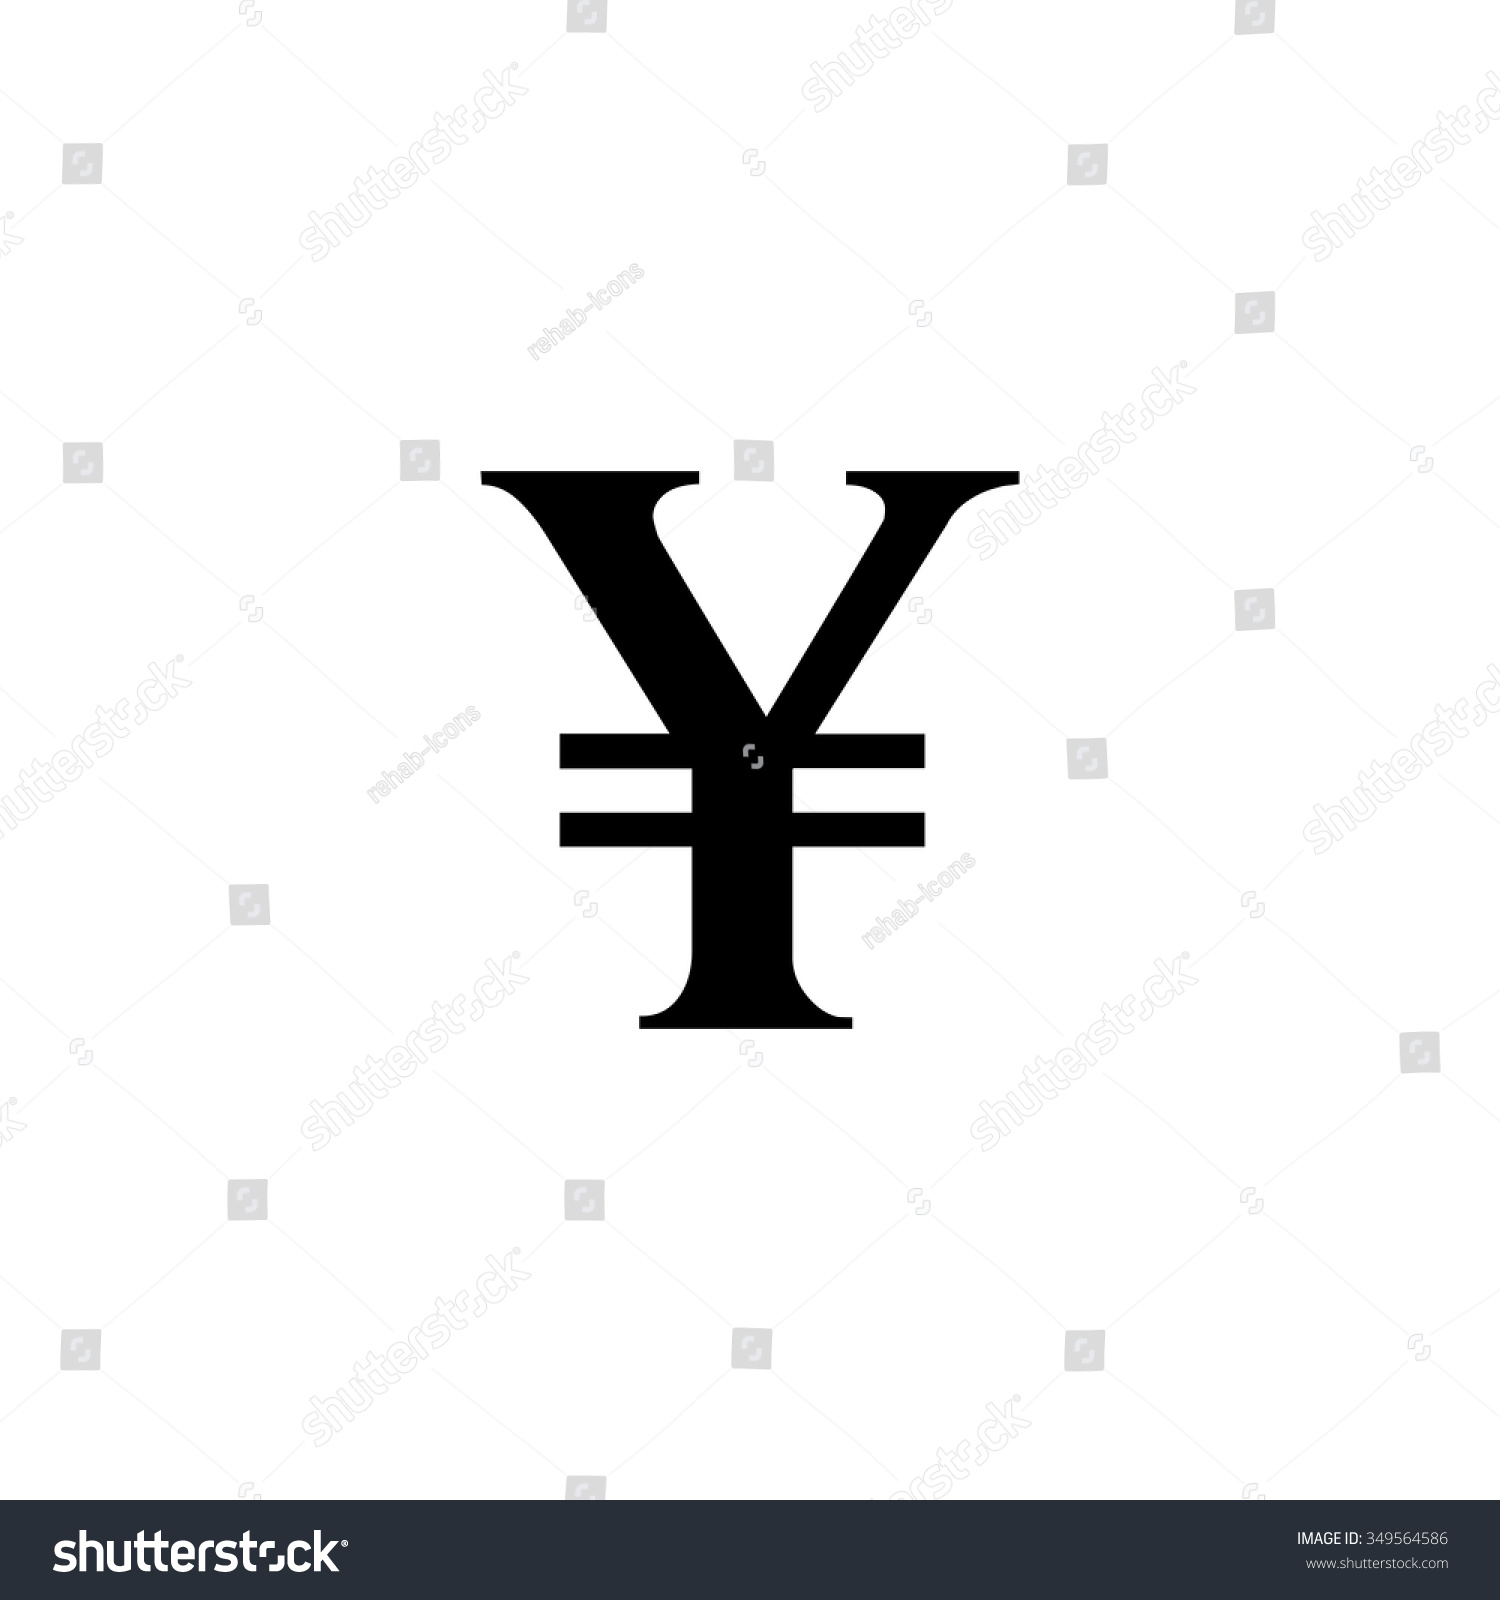 Jpy currency symbol images symbol and sign ideas yen sign icon jpy currency symbol stock vector 349564586 yen sign icon jpy currency symbol money biocorpaavc